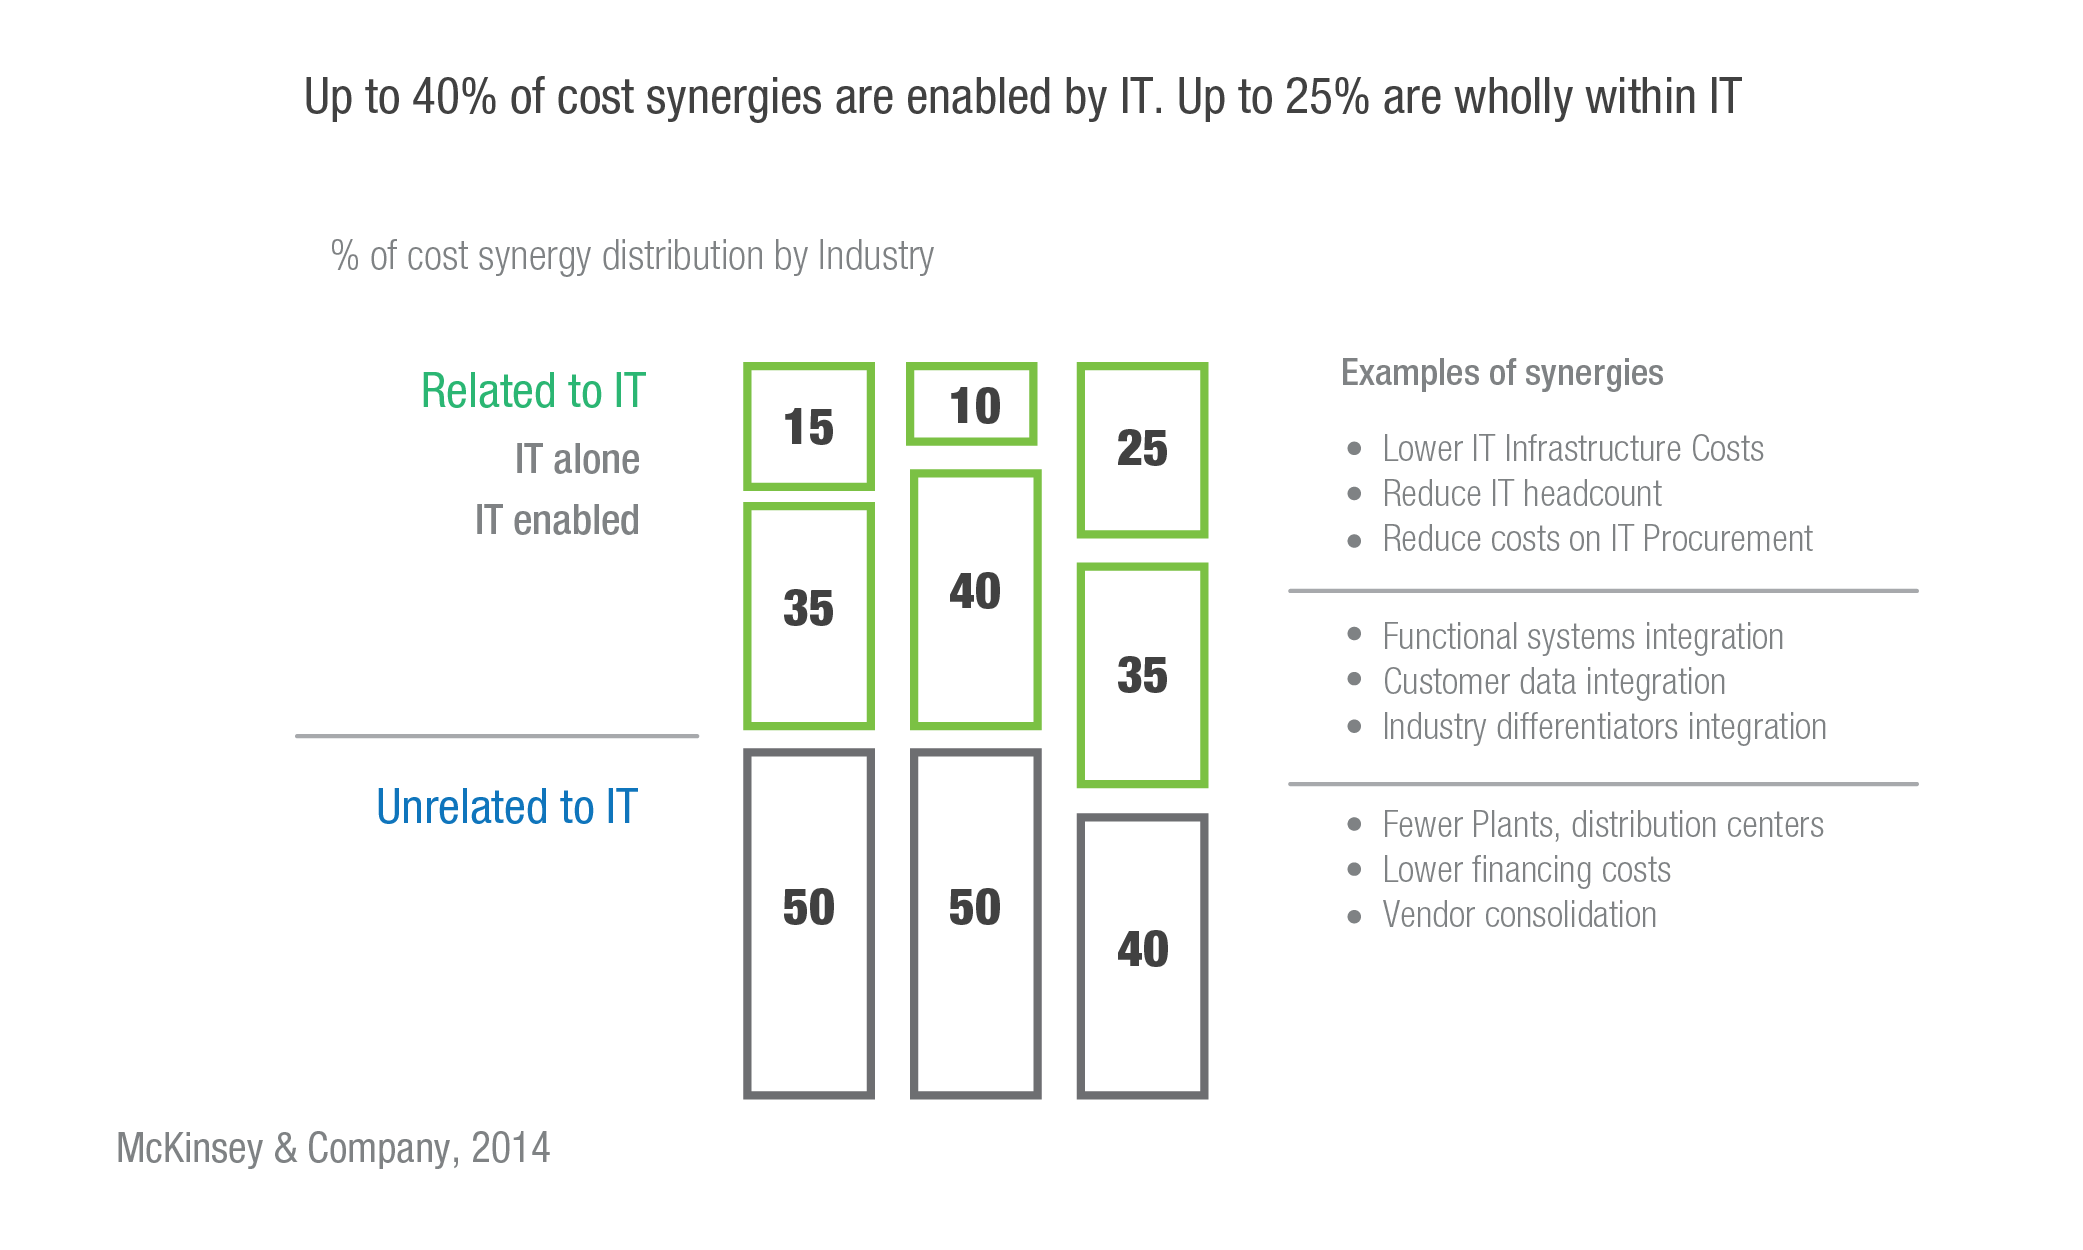 Up to 40% of cost synergies are enabled by IT